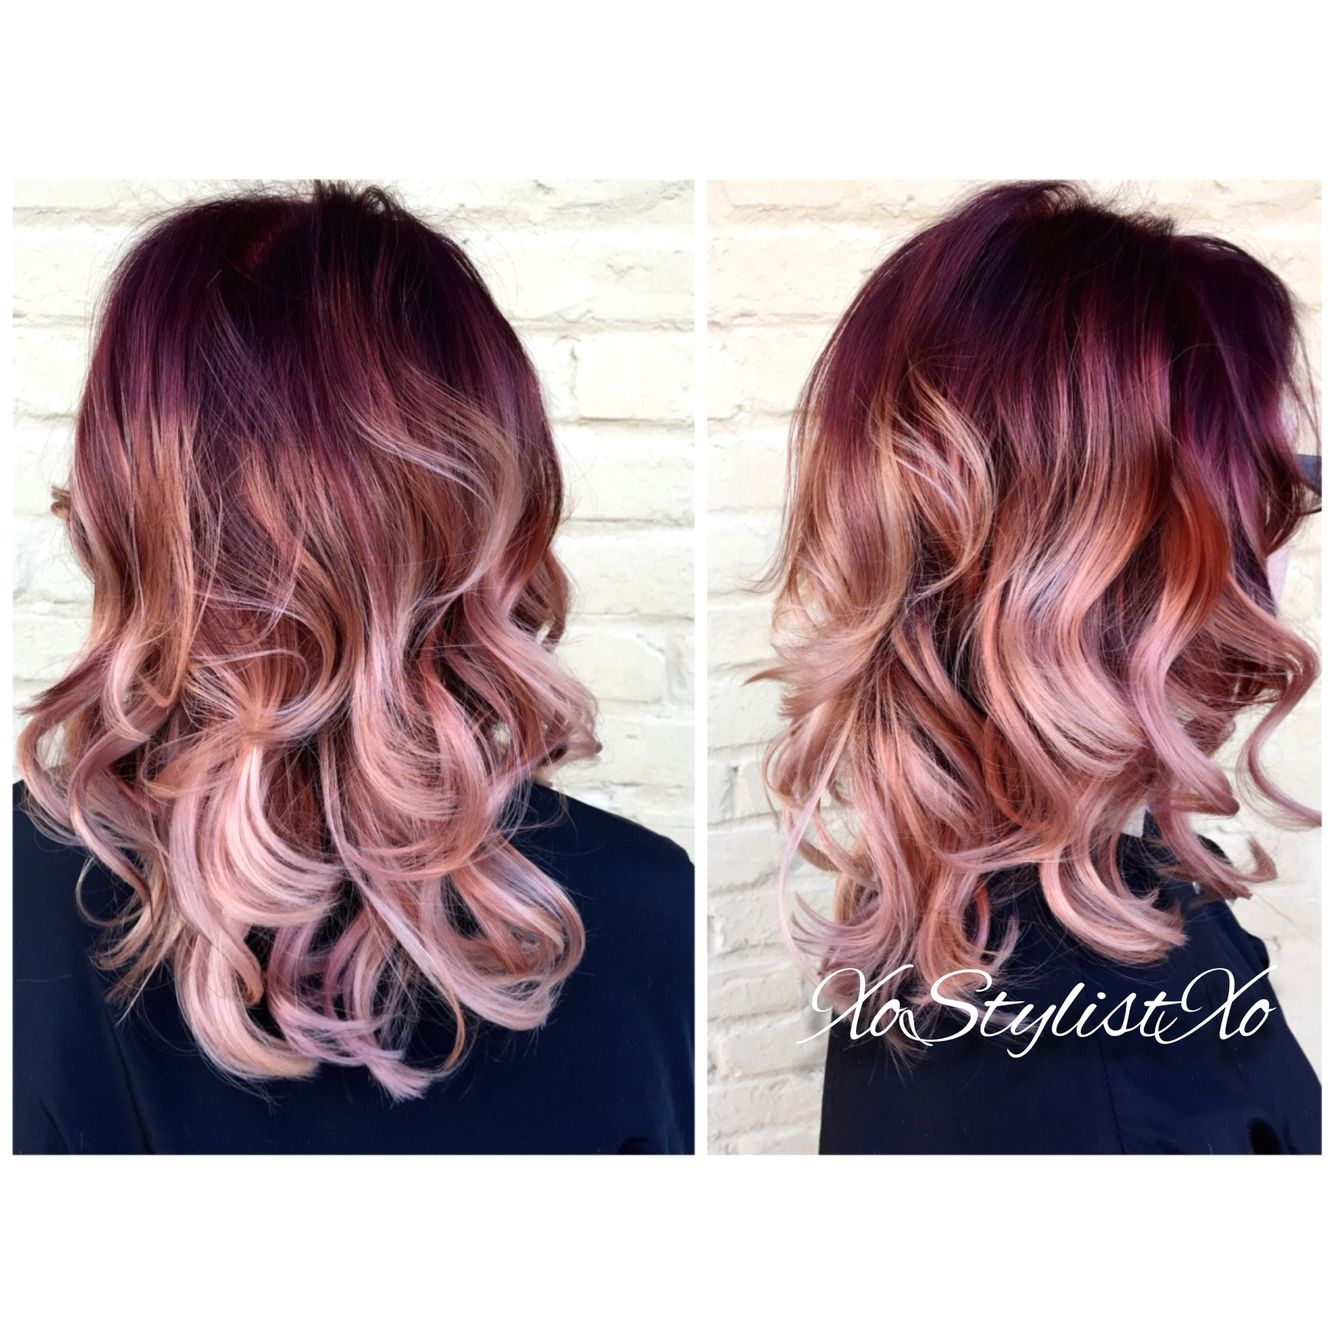 1000+ ideas about Rose Gold Hair on Pinterest | Rose Gold ...